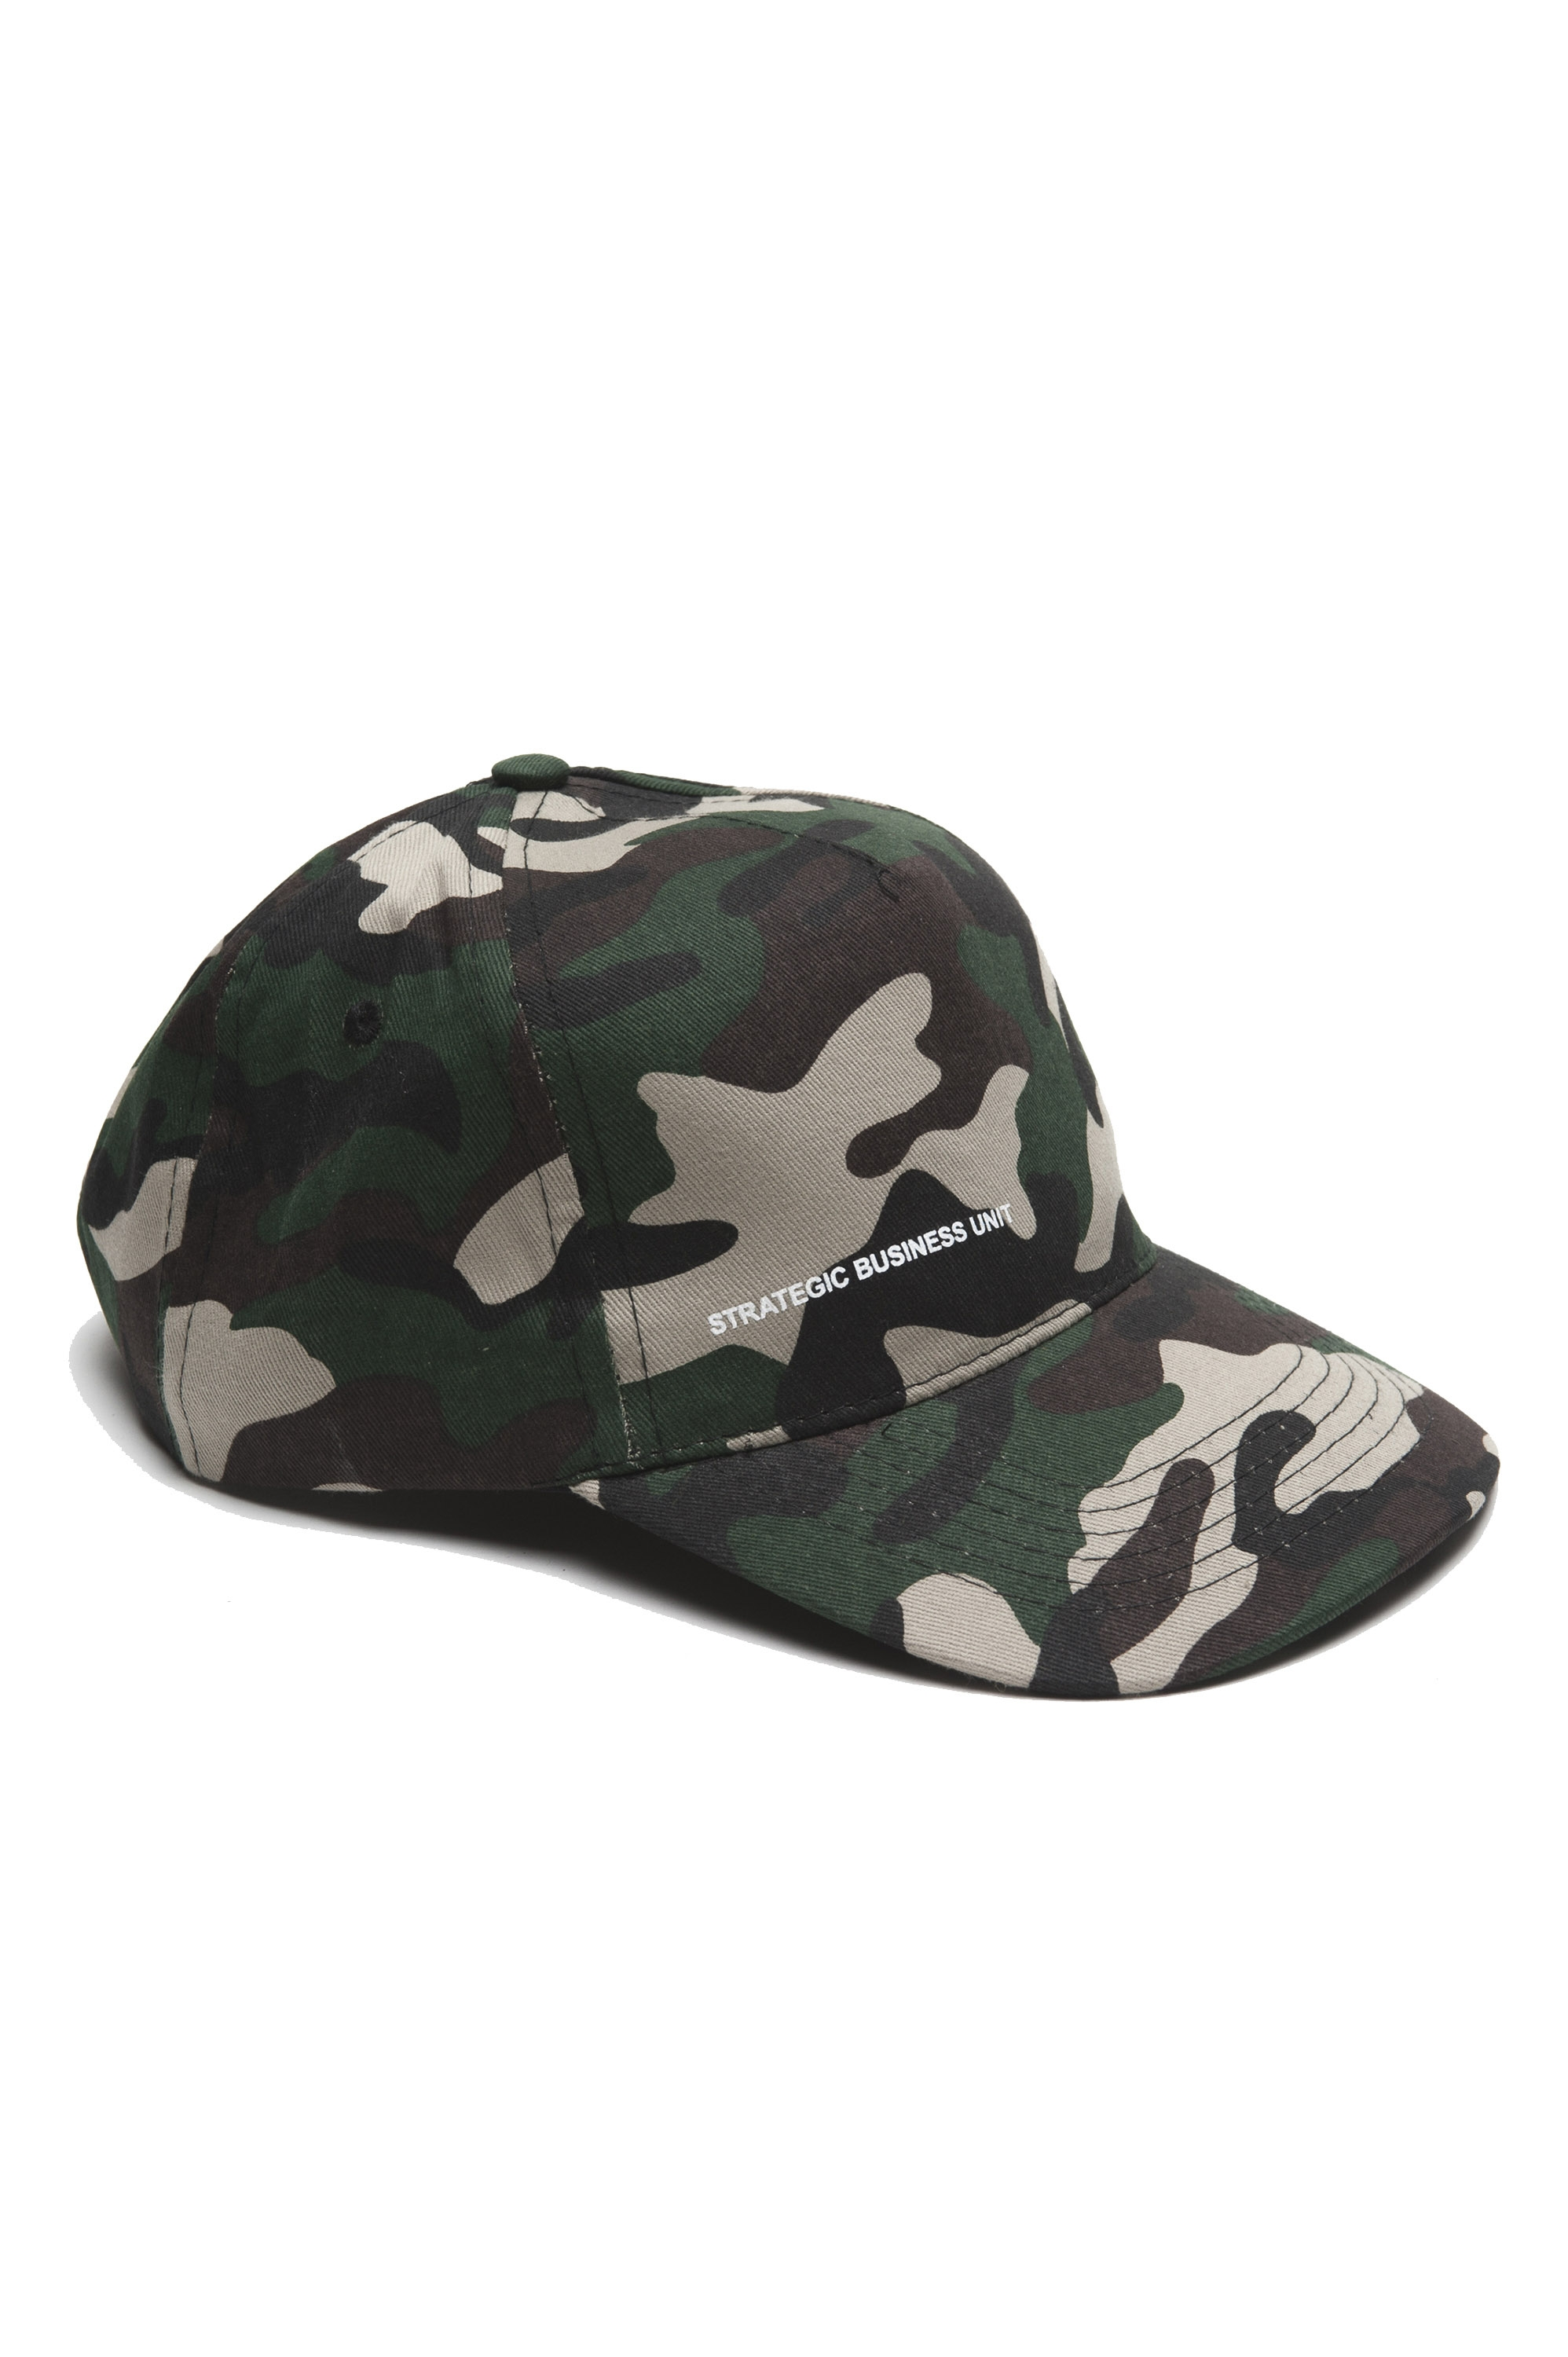 SBU 01809 Classic cotton baseball cap camouflage green 01